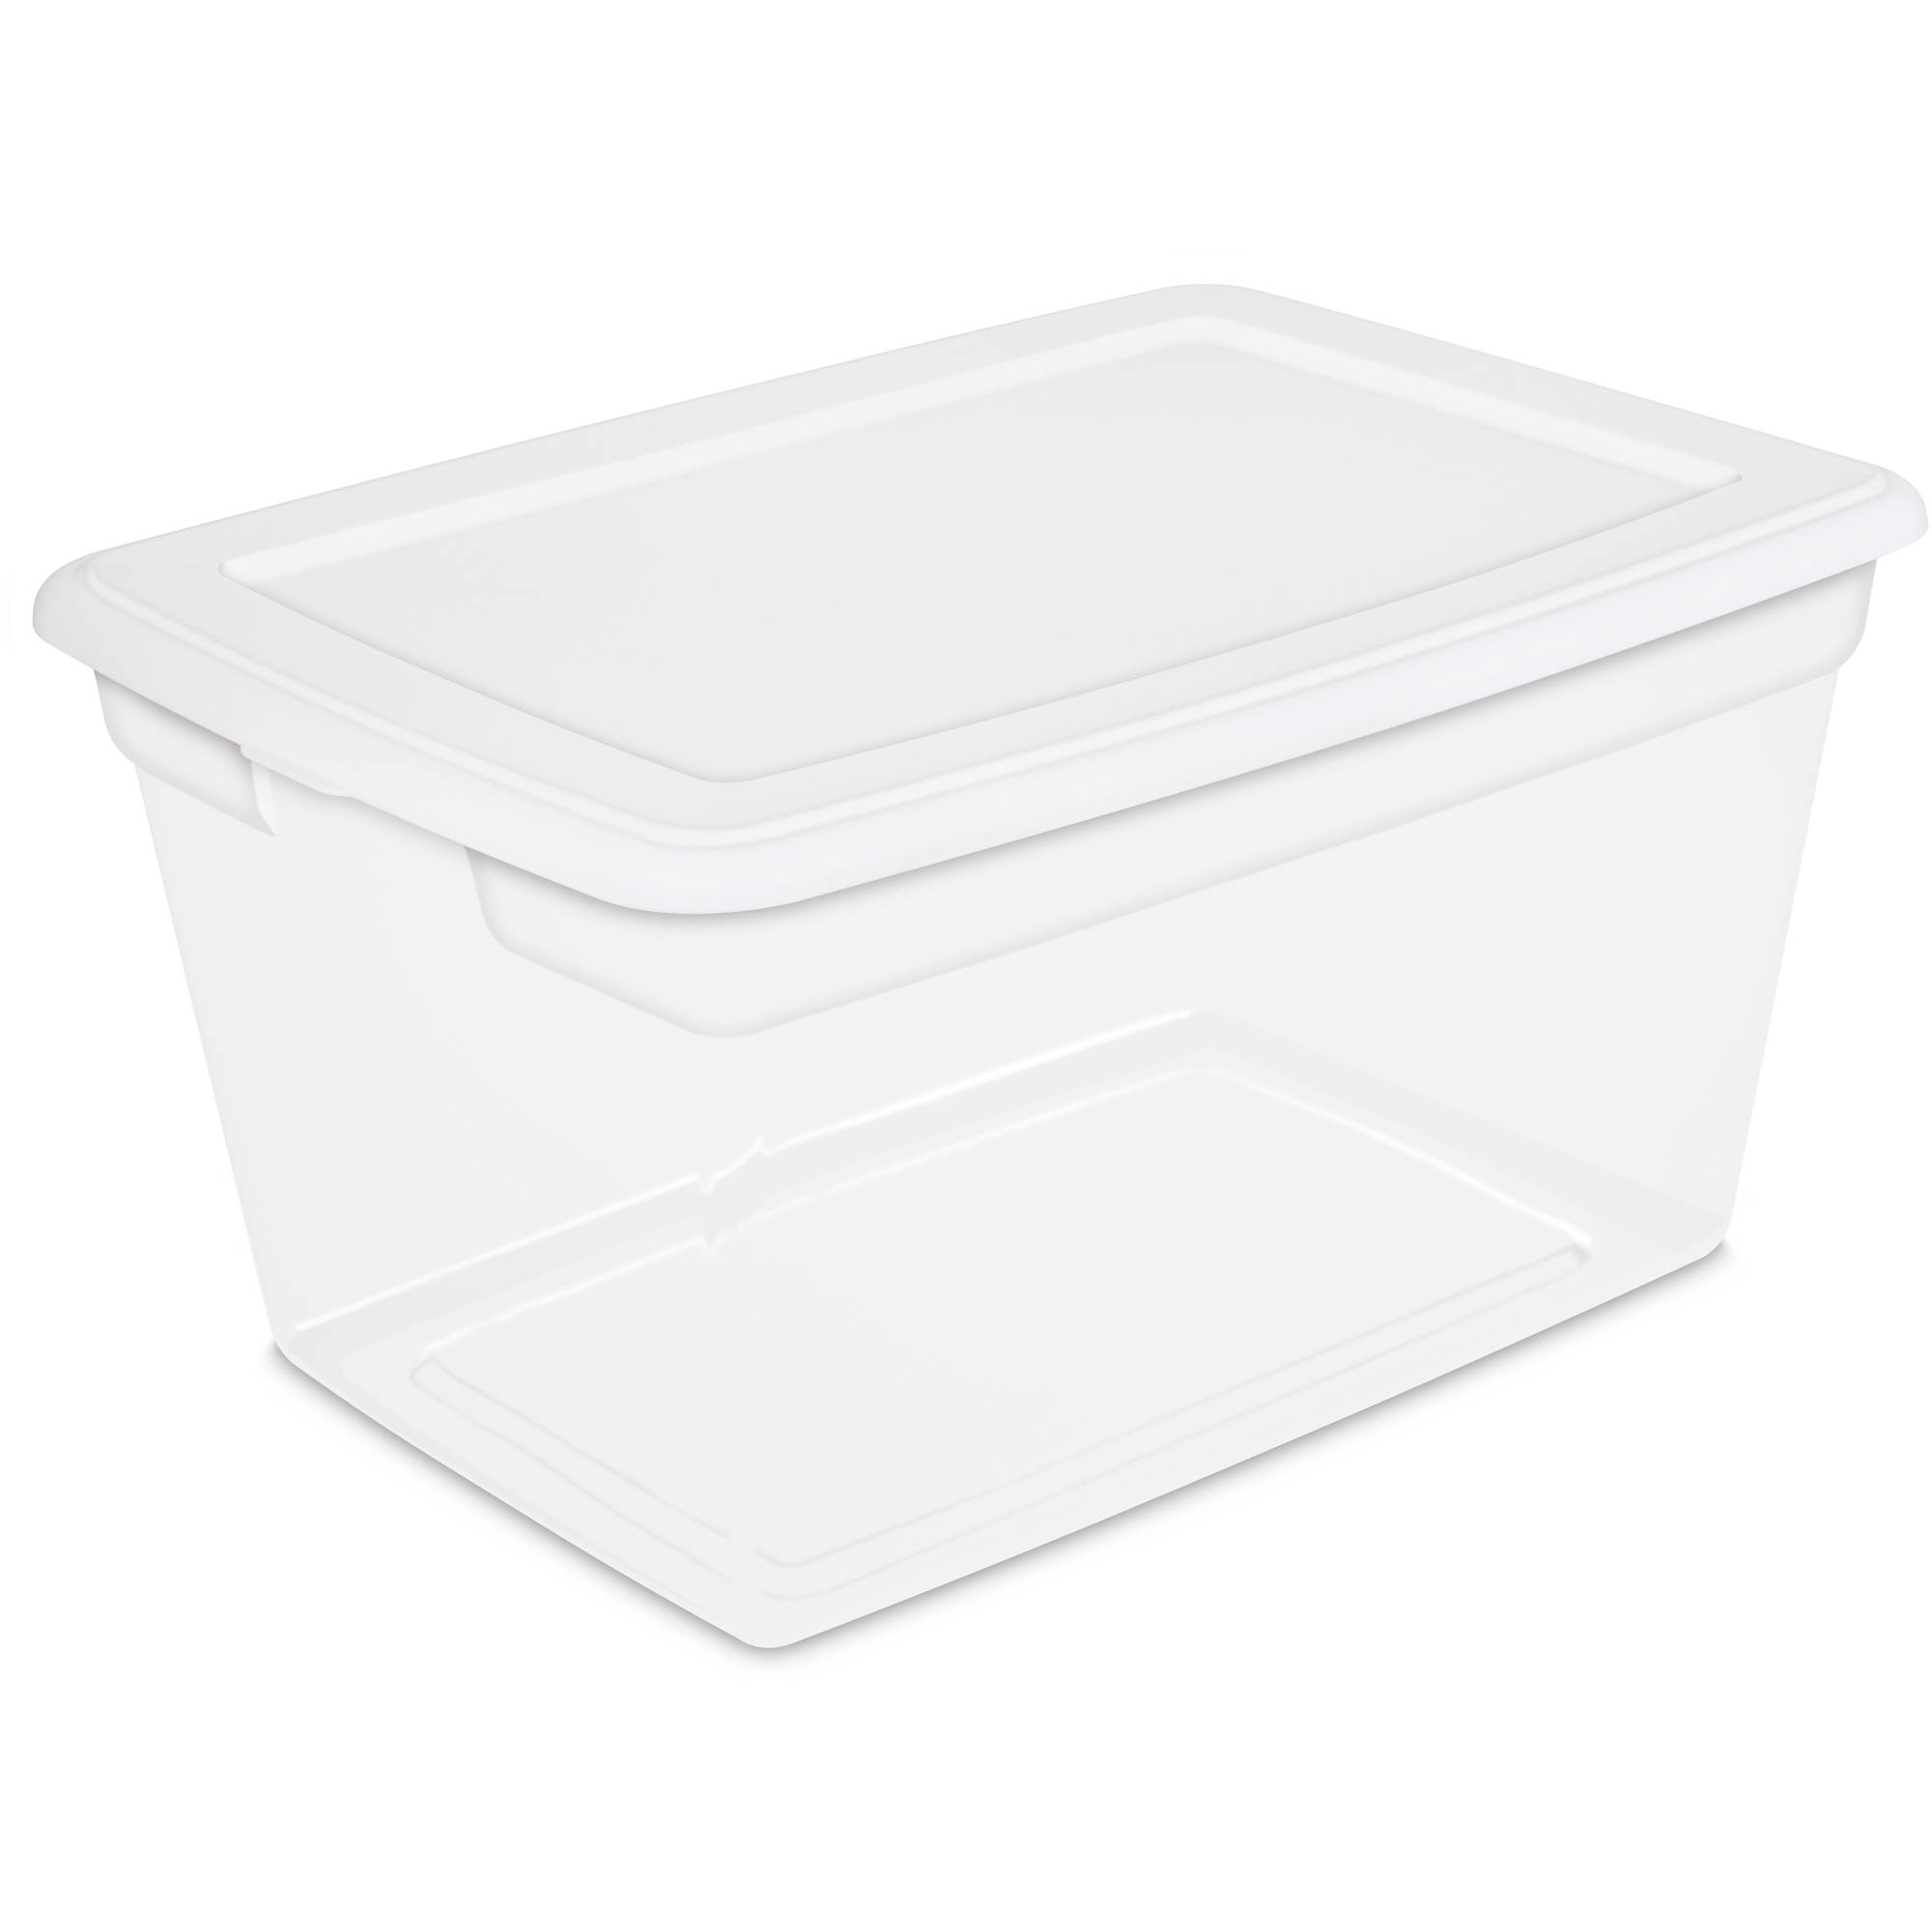 Best Kitchen Gallery: Hefty Hi Rise Storage Bins 113 Qt Xl Stackable Bin With Latch of Plastic Storage Containers on rachelxblog.com